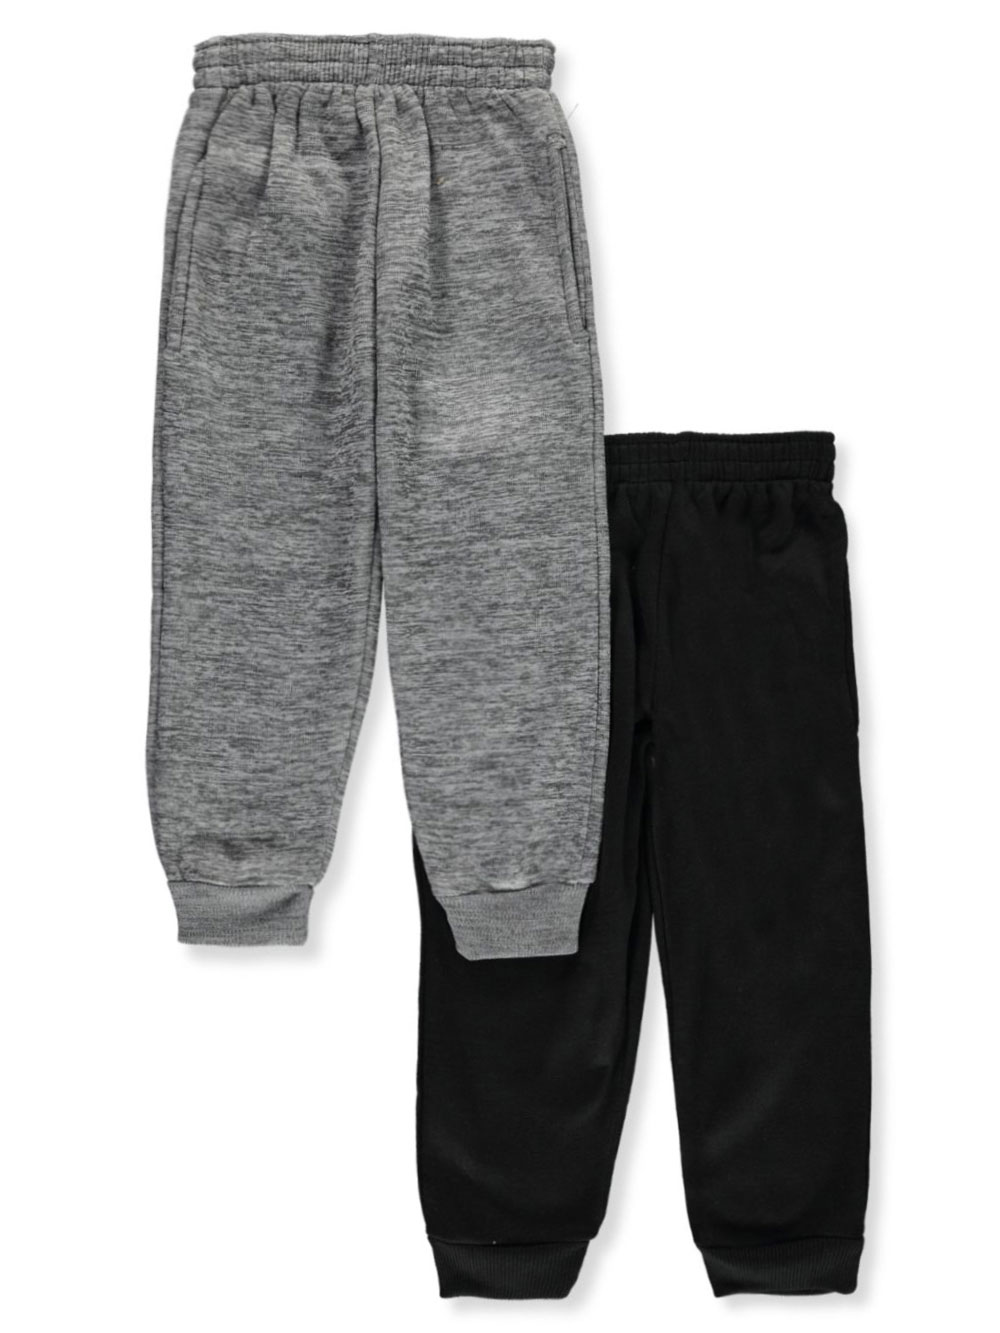 Boys Charcoal and Black Sweatpants